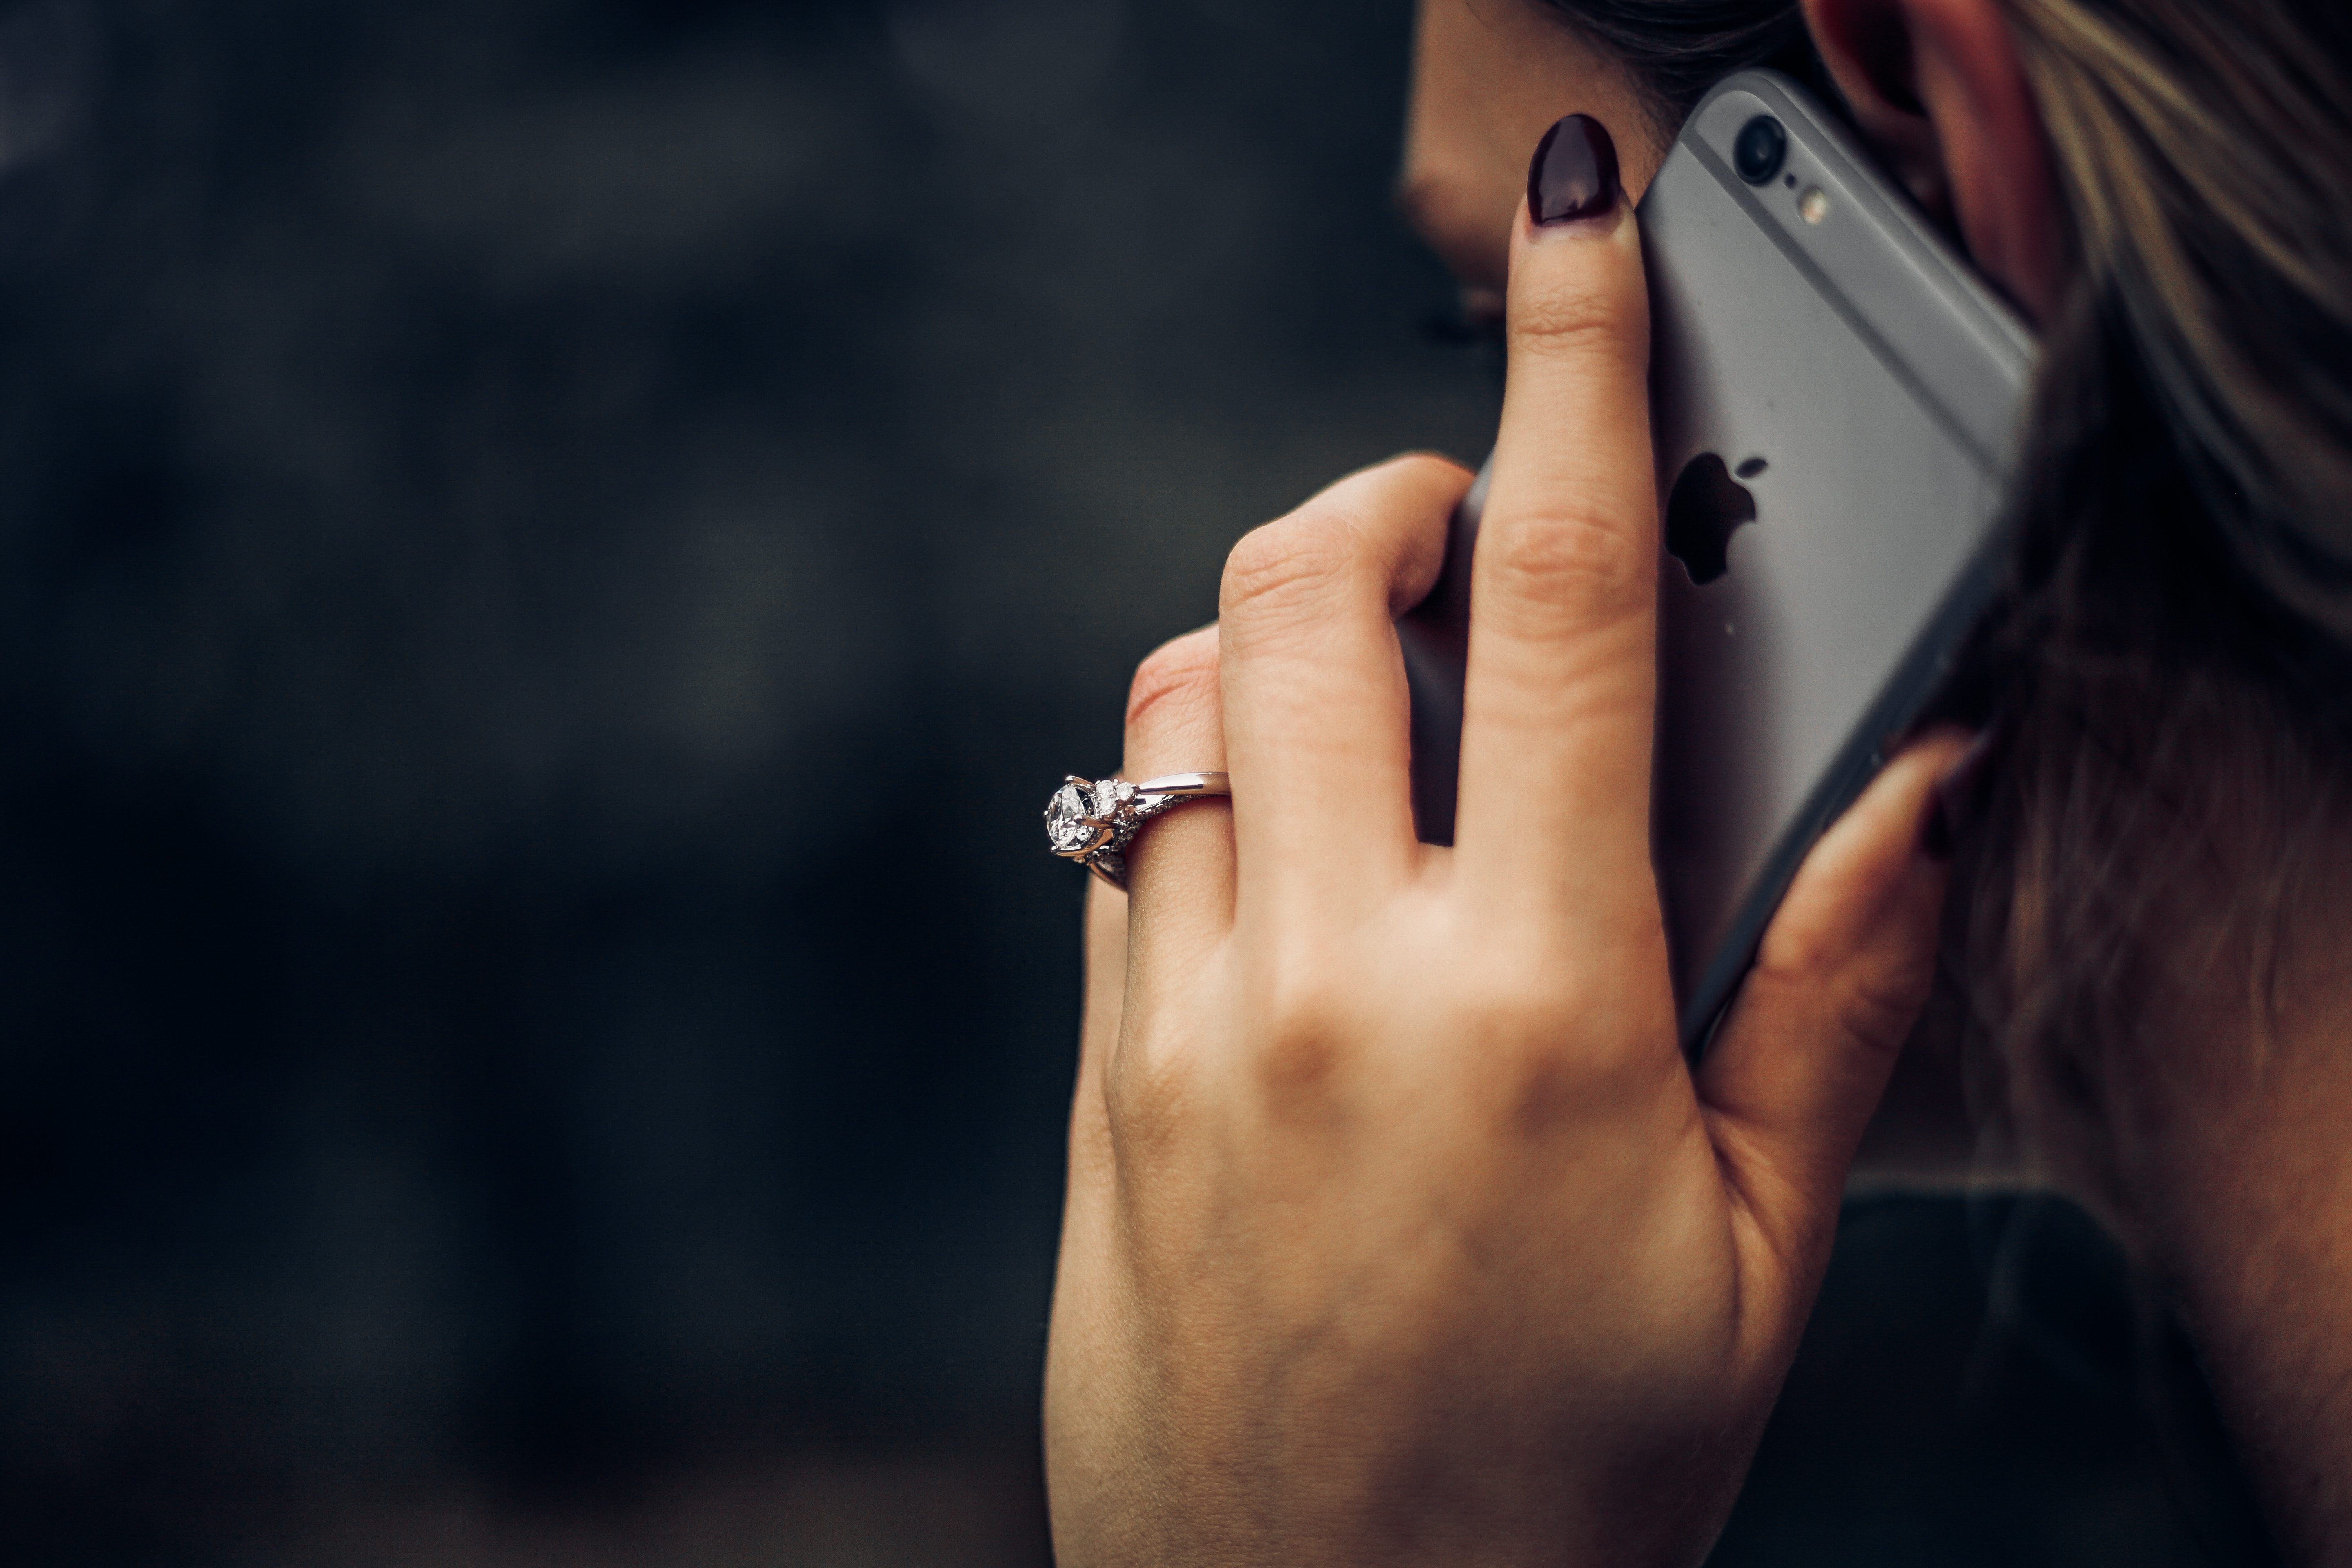 How to set caller ID on iPhone